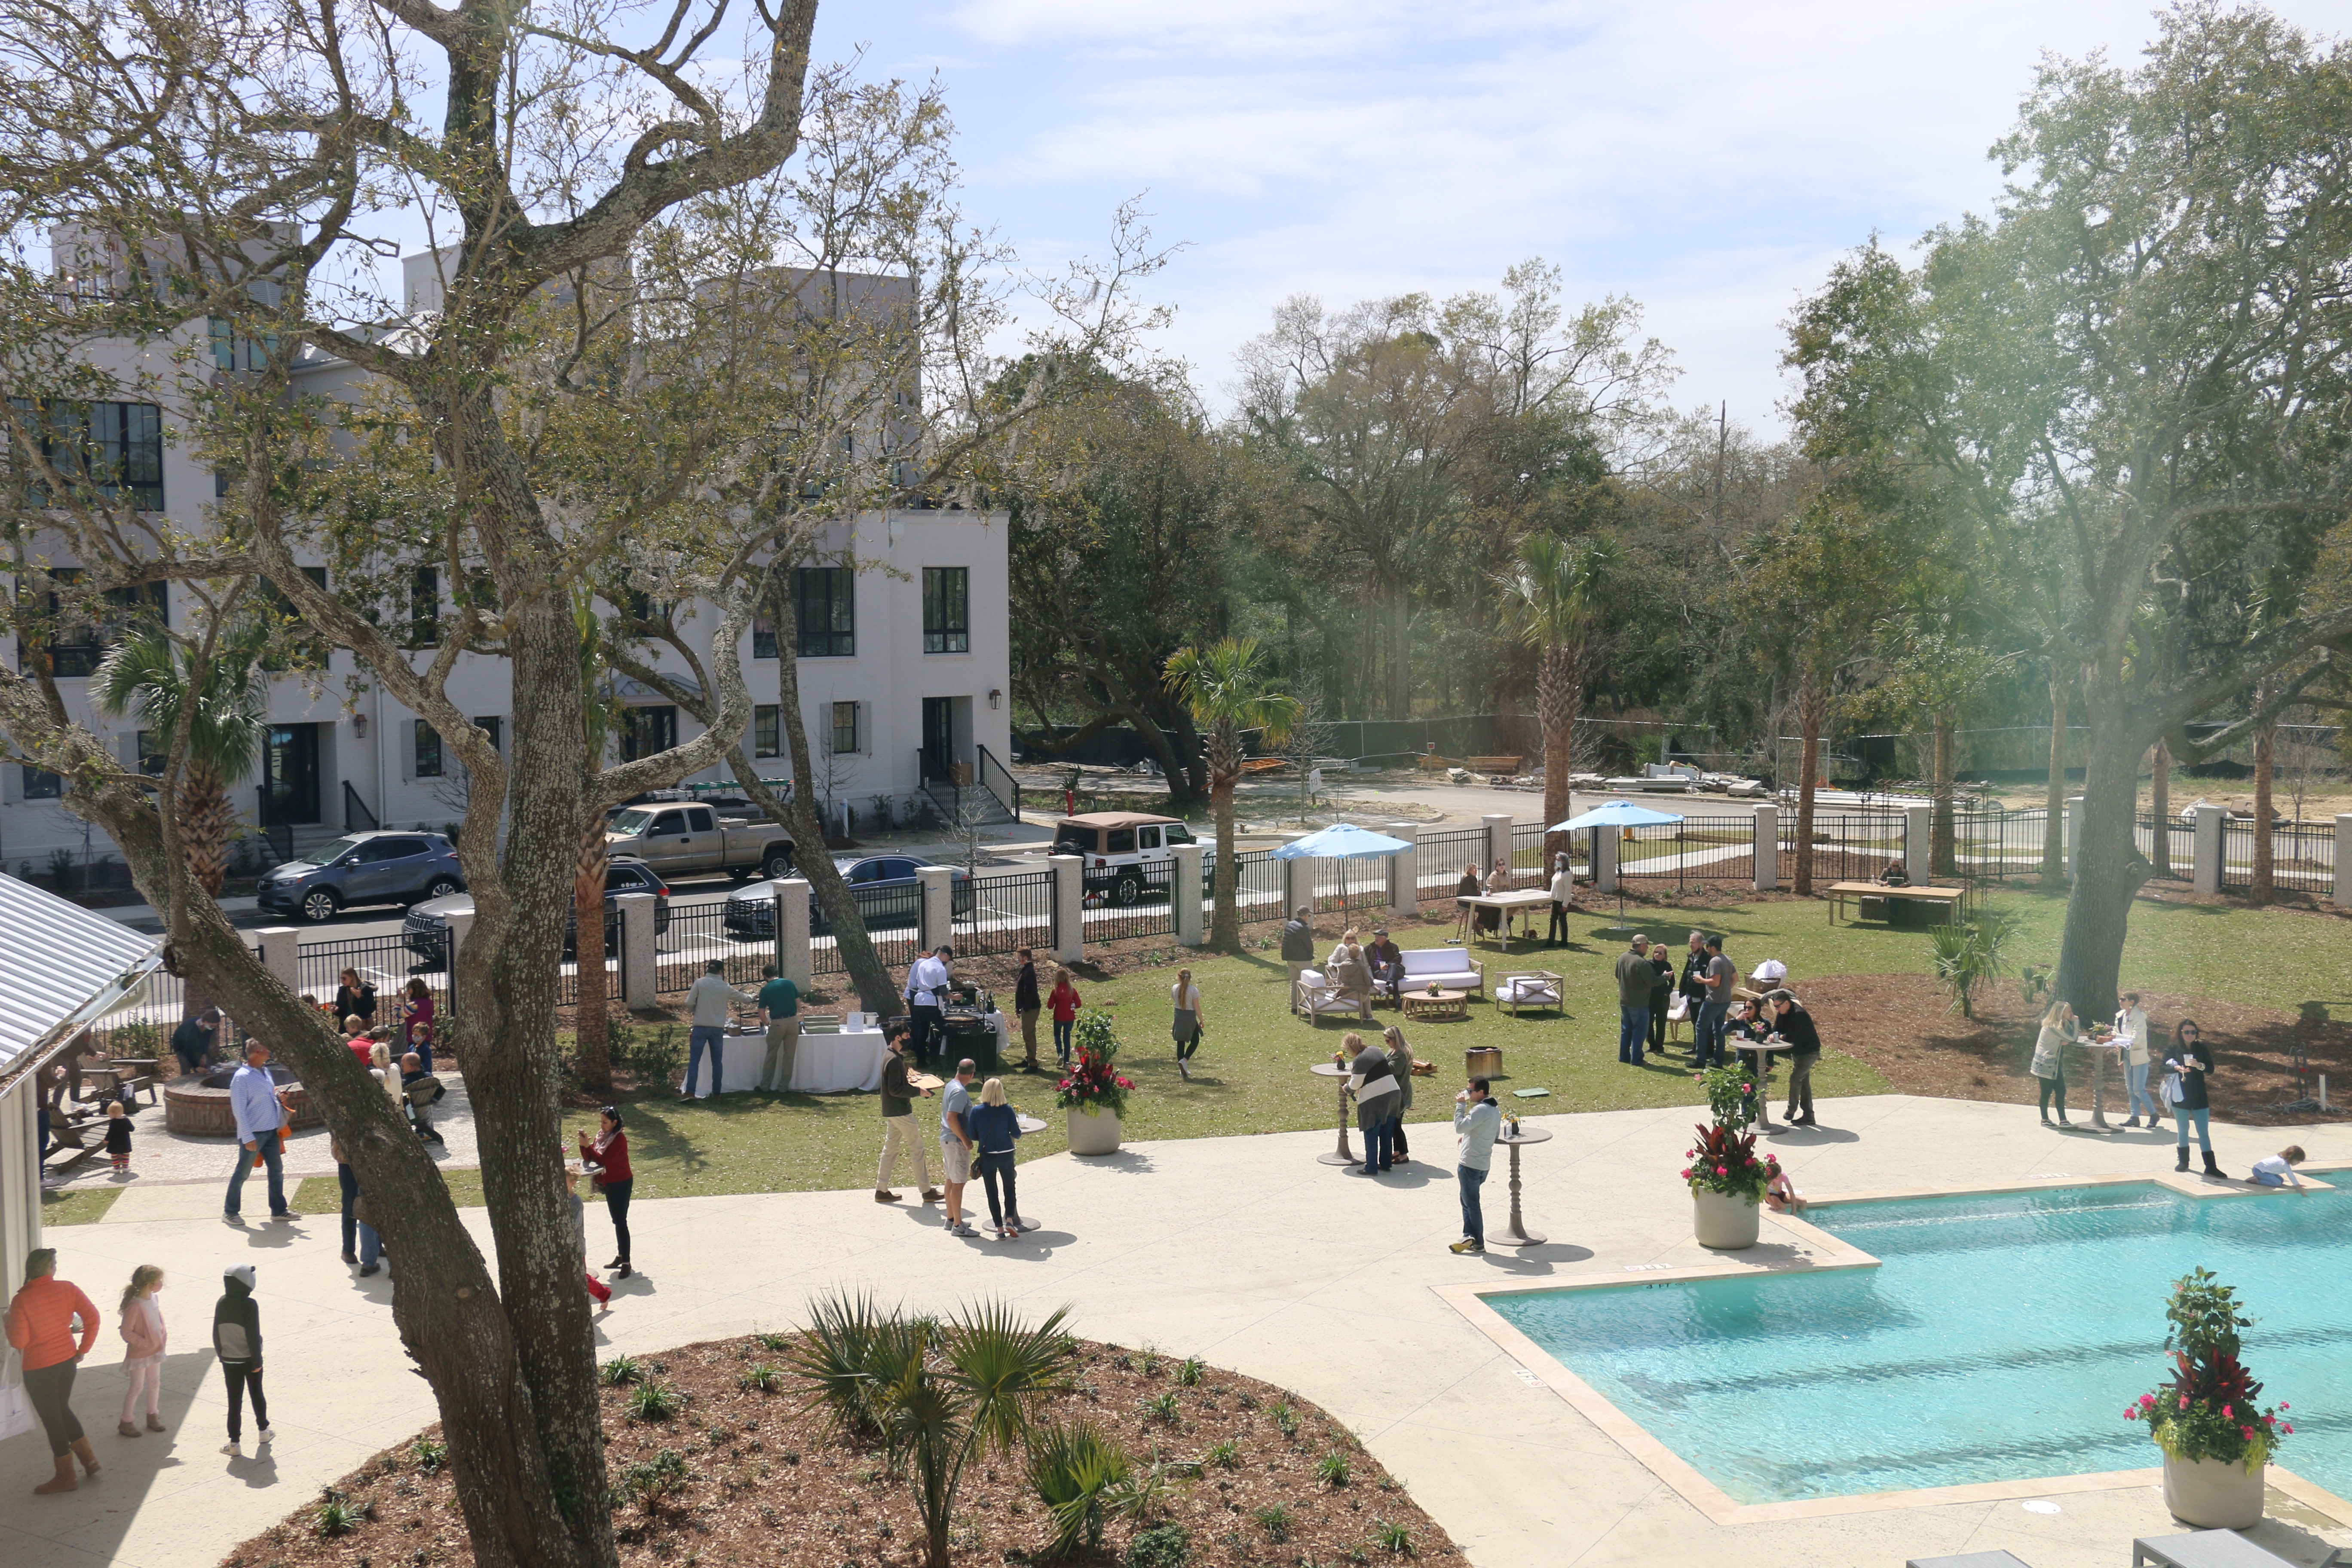 An aerial view of the festivities of Waterfest at the grand opening of The Waterfront. This vantage point is from one of the condominiums and townhouses adjacent to the community complex that includes a greenspace and a gated pool area.